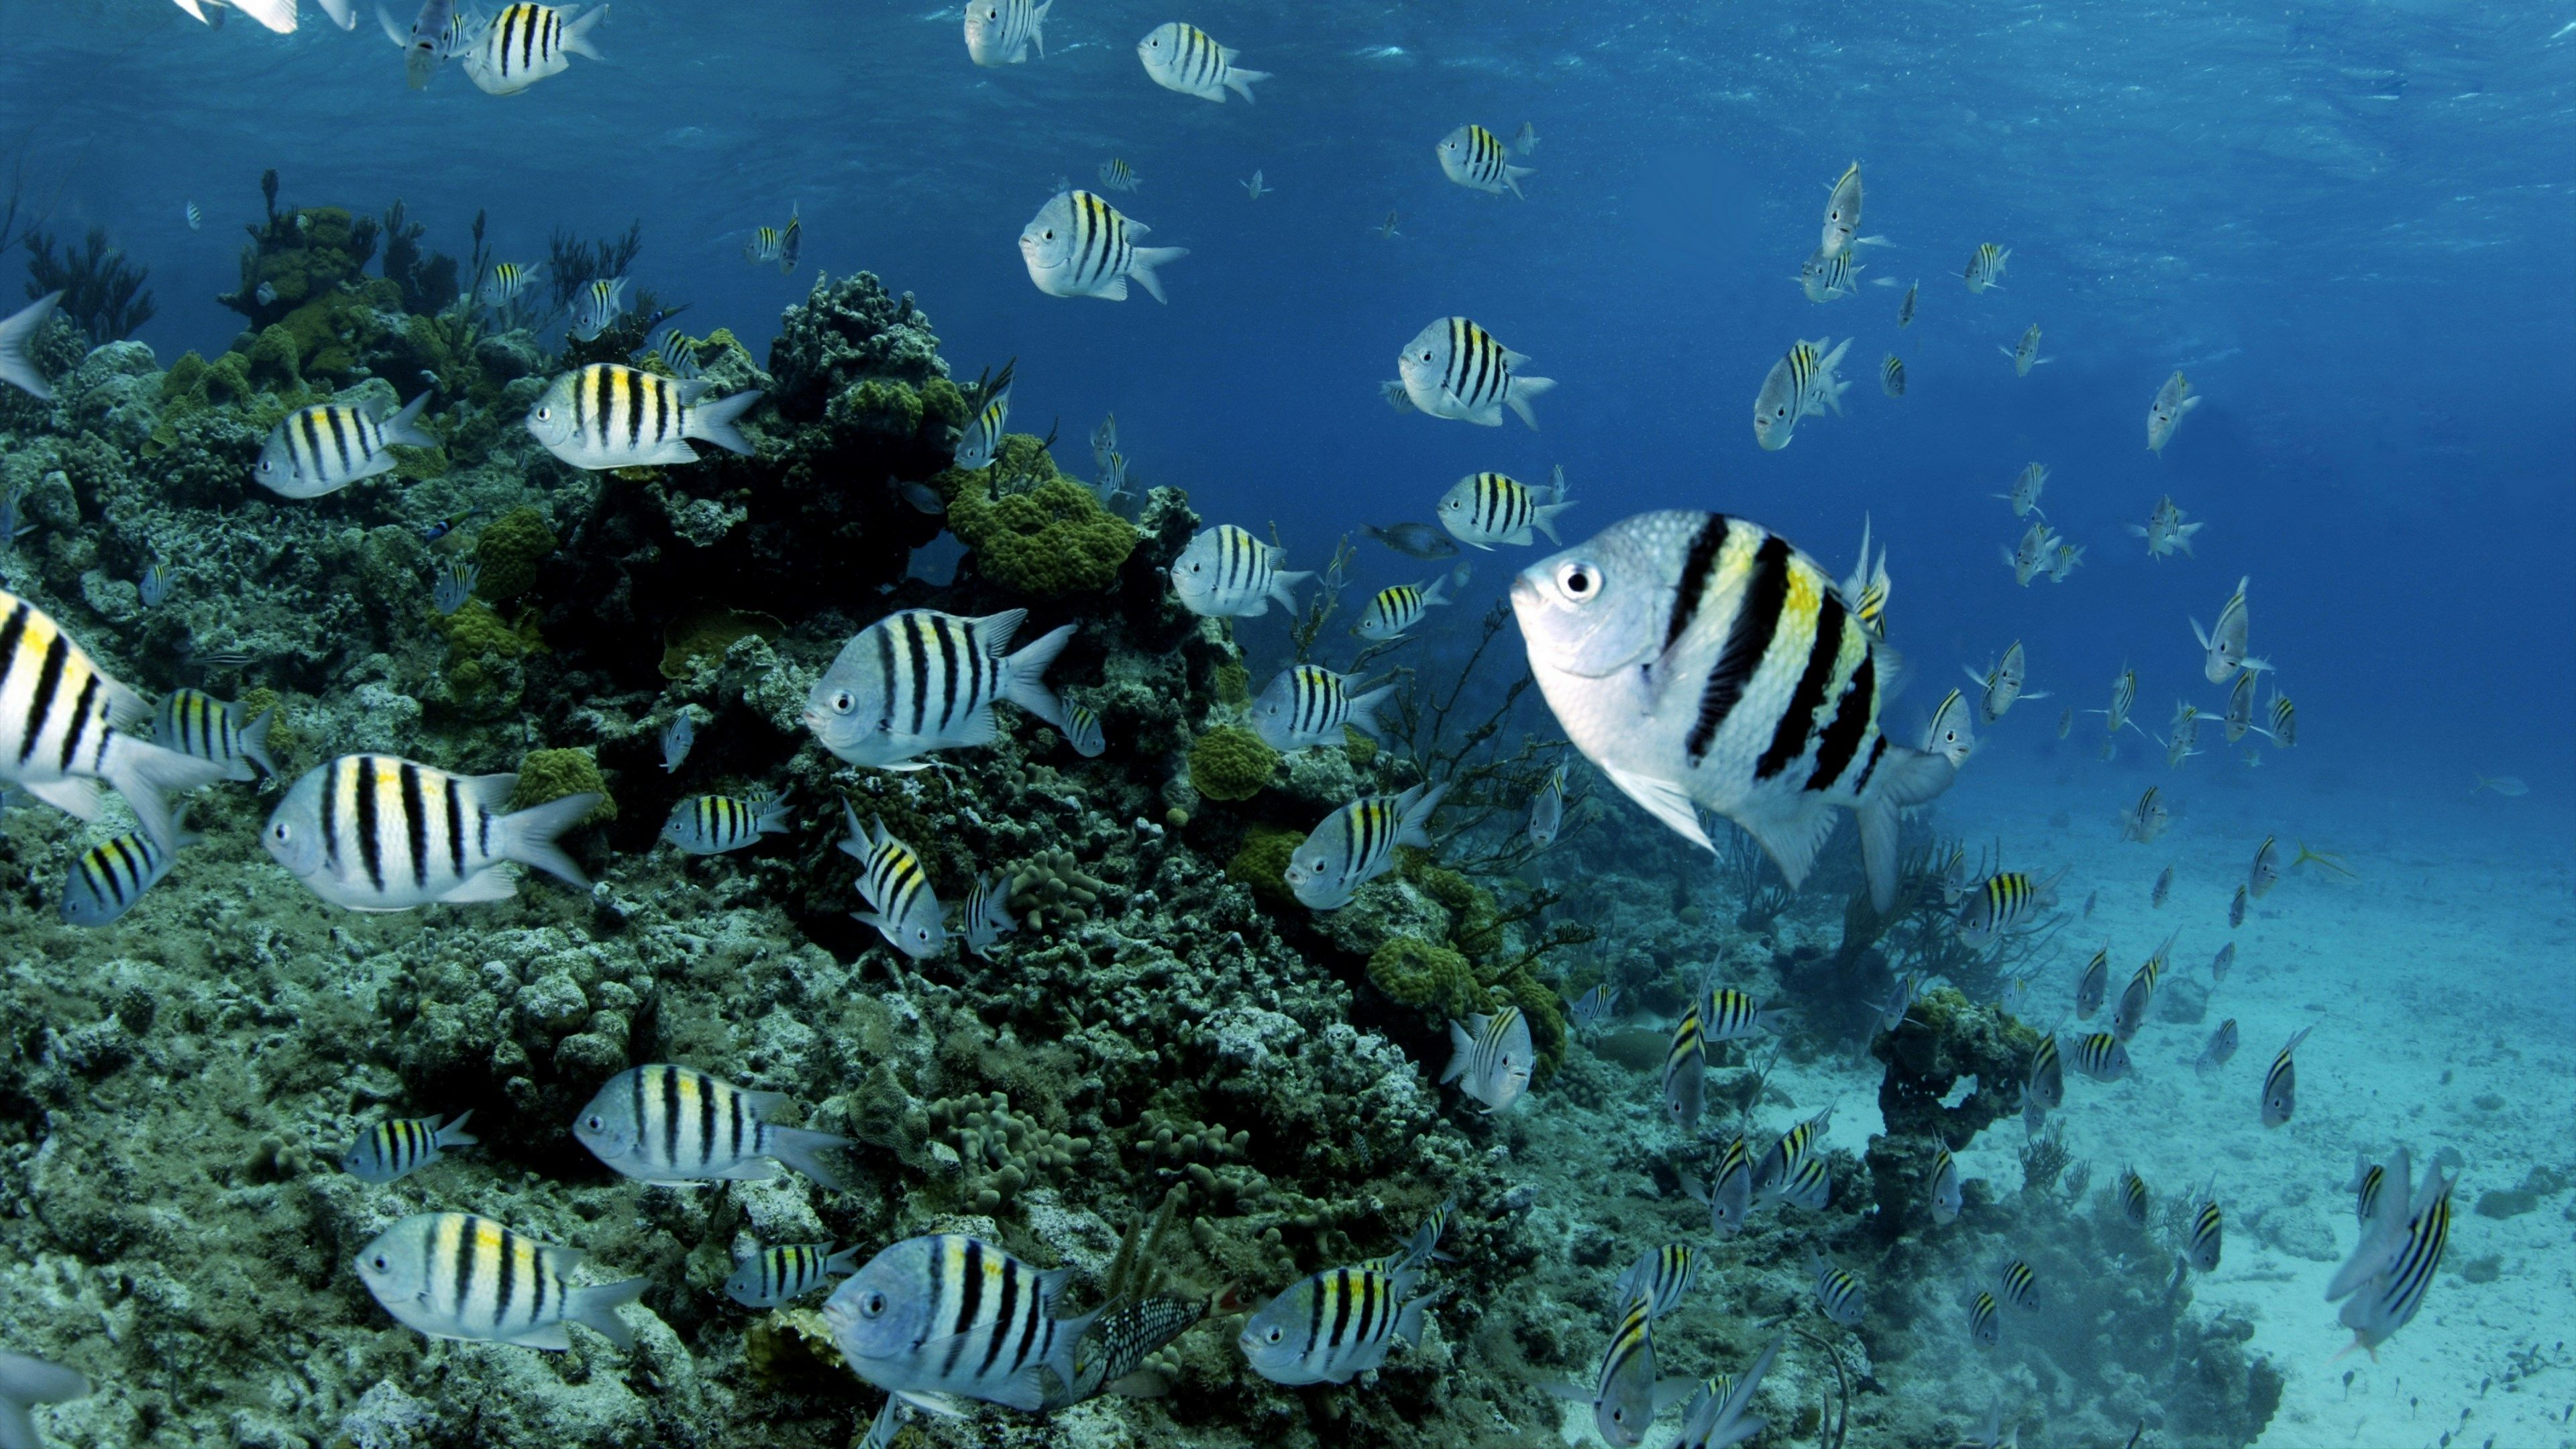 Hd Coral Reef Picture Wallpaper (With Images)